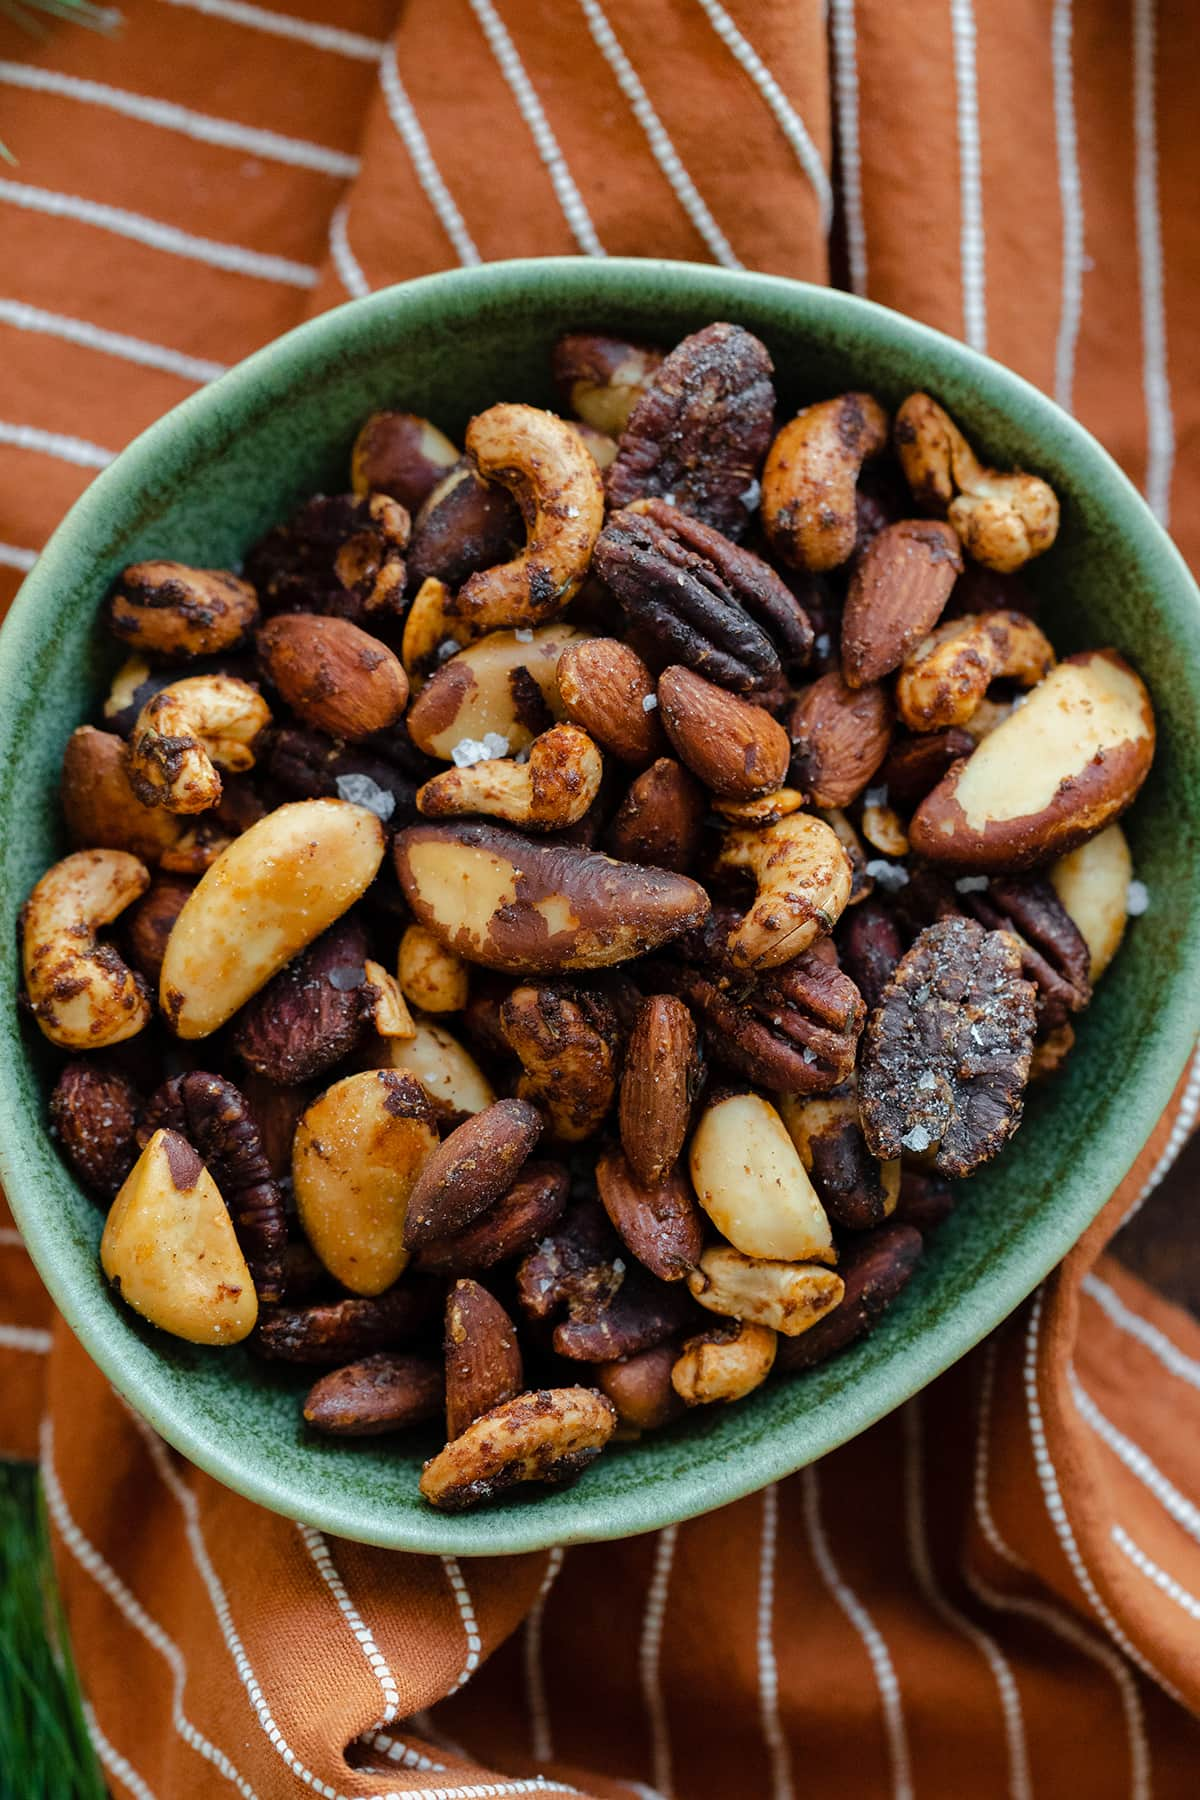 A close-up shot of roasted nuts in a green bowl on an orange and white striped napkin.